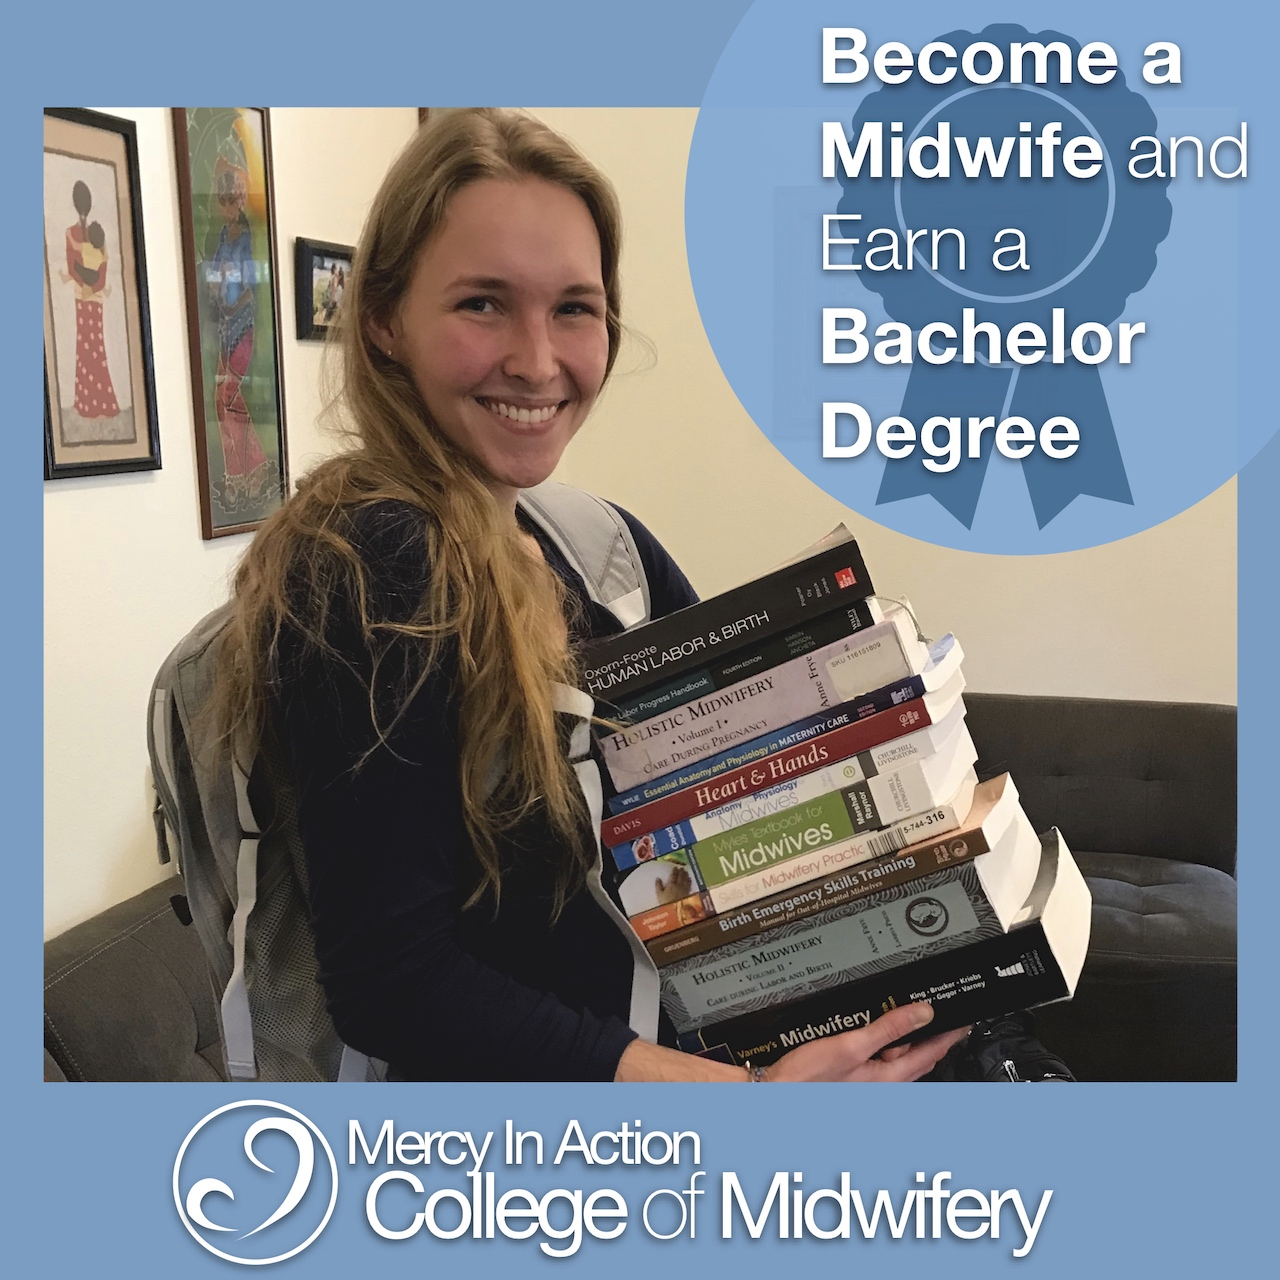 ad for Mercy in Action College